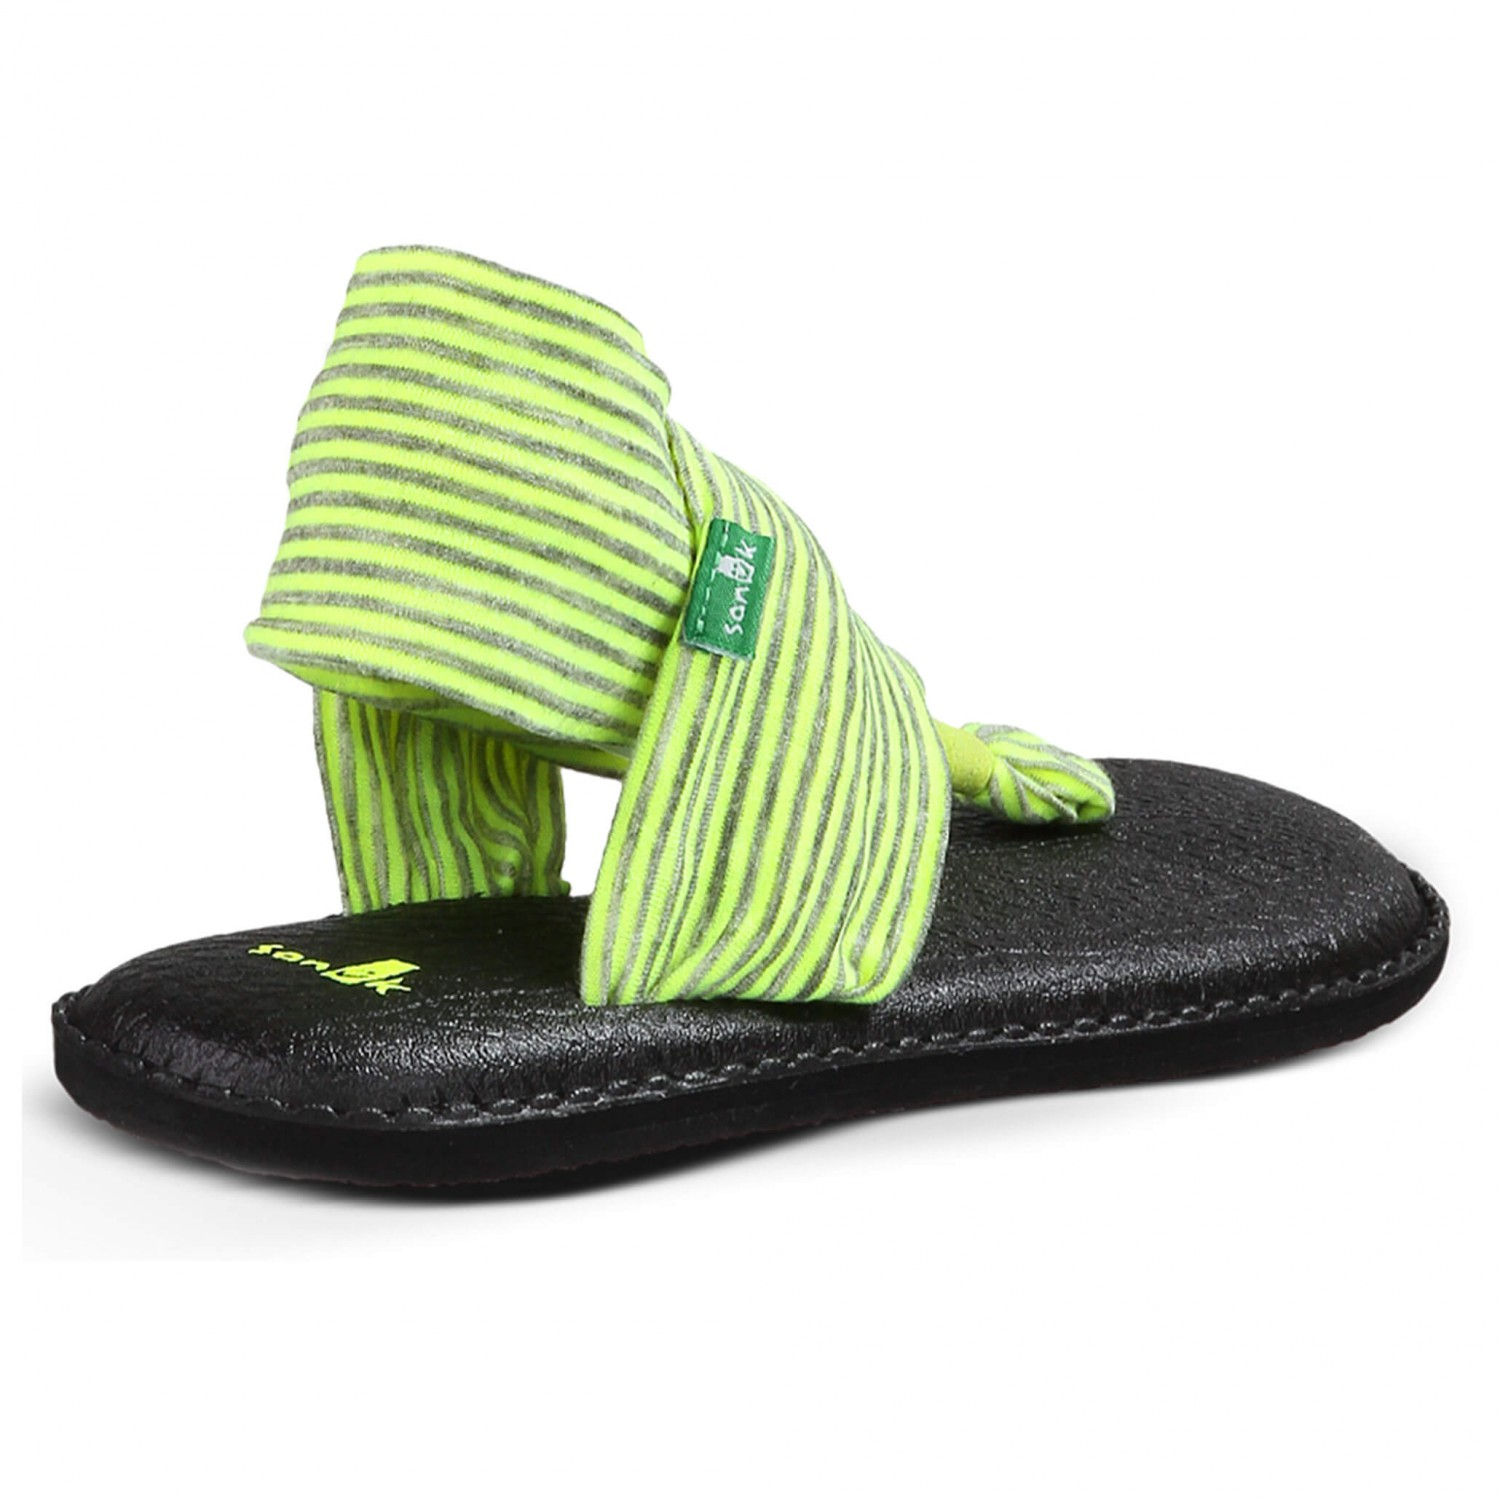 Women's Sanuk Shoes. At Buckle, find different colors, patterns and styles of Sanuk women's shoes to choose from. Sanuk strives to make products that are as much about funk as they are about function.